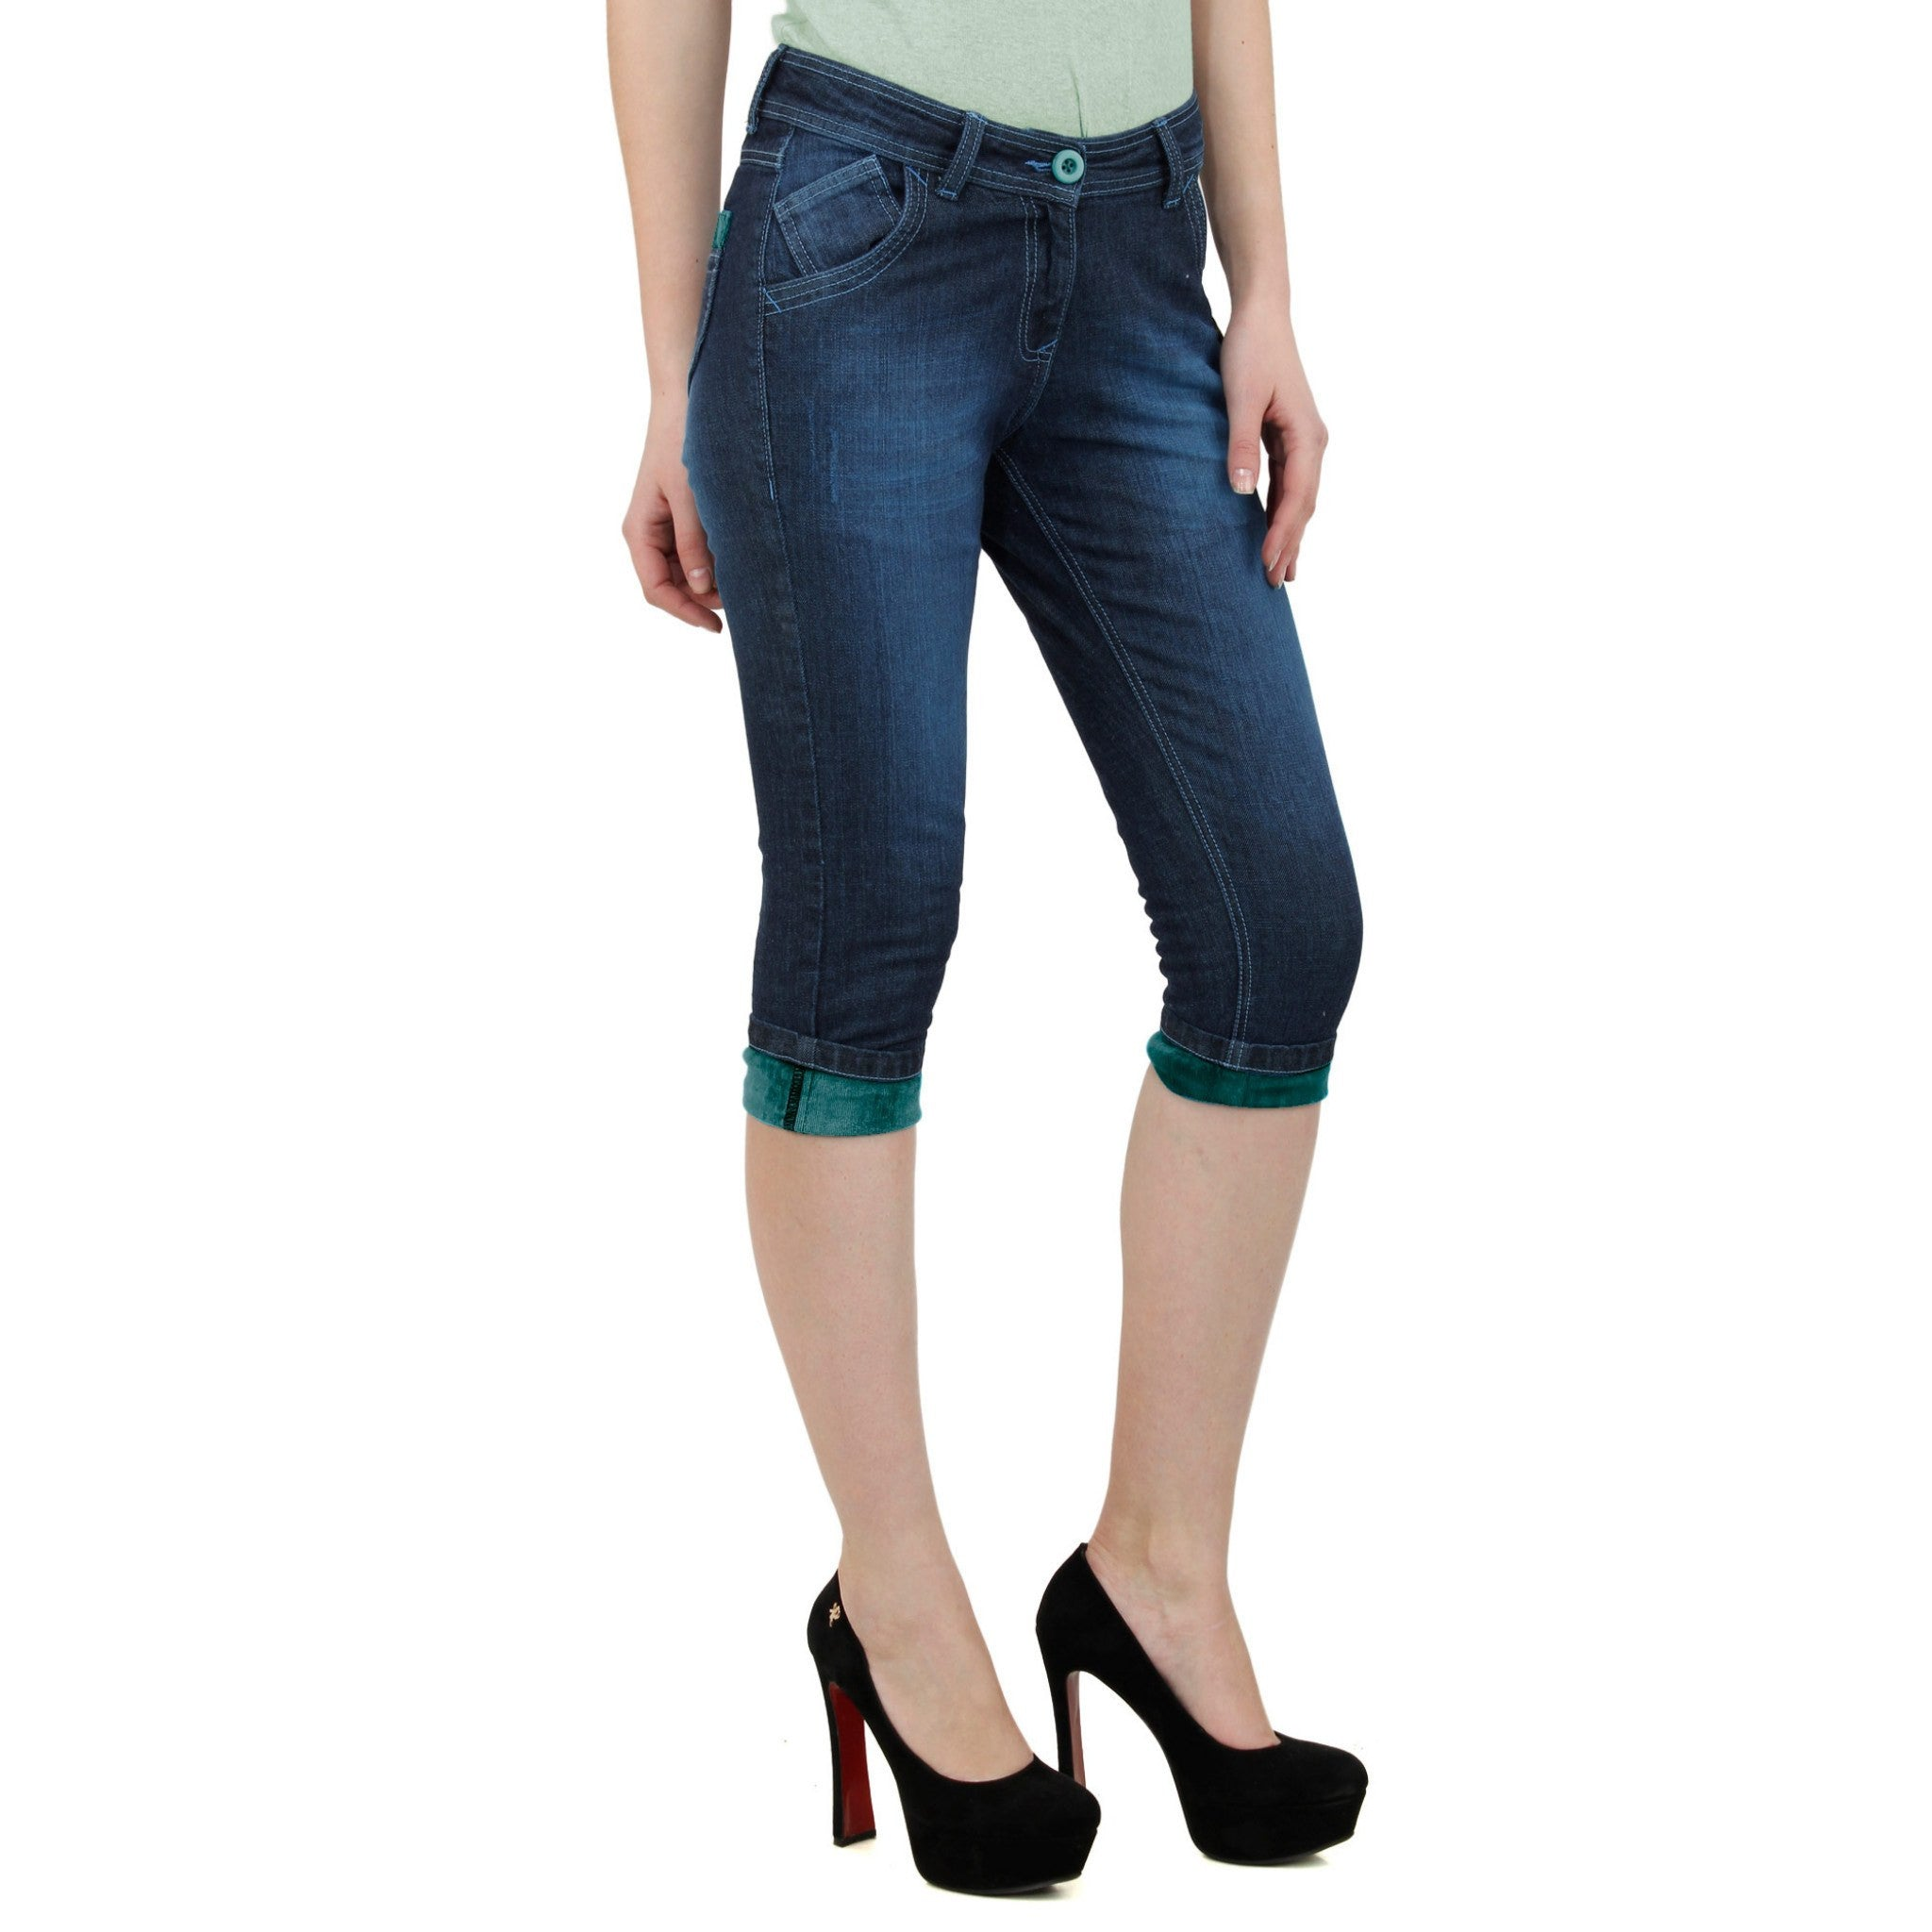 Midnight Blue Denim Capri right side view